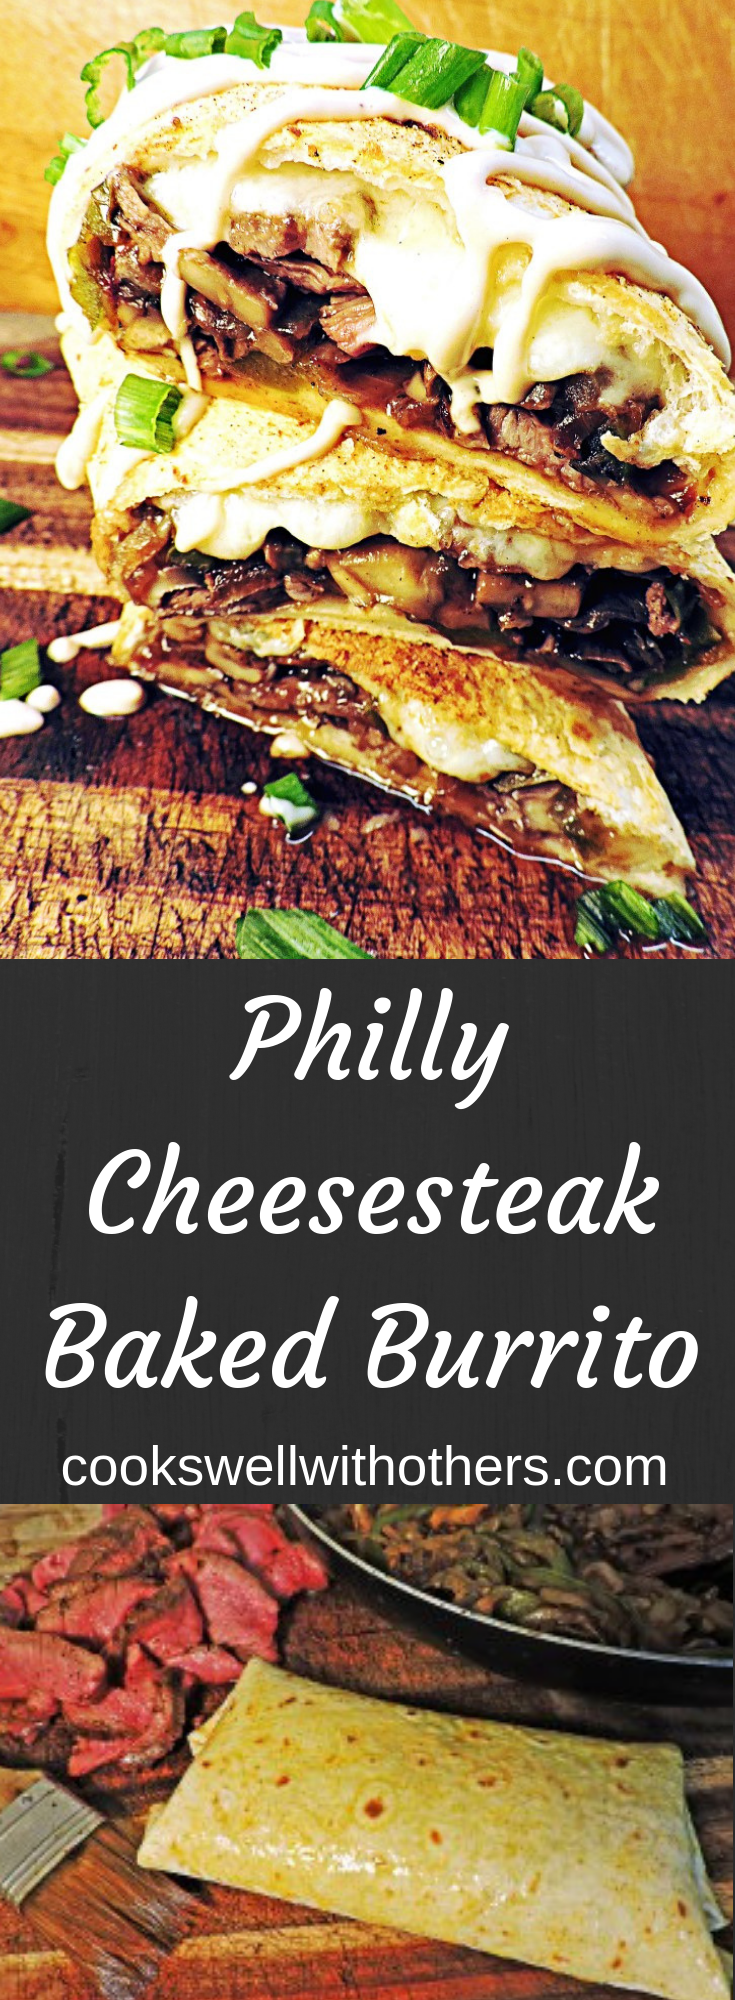 Philly Cheesesteak Baked Burrito Recipe Baked Burritos